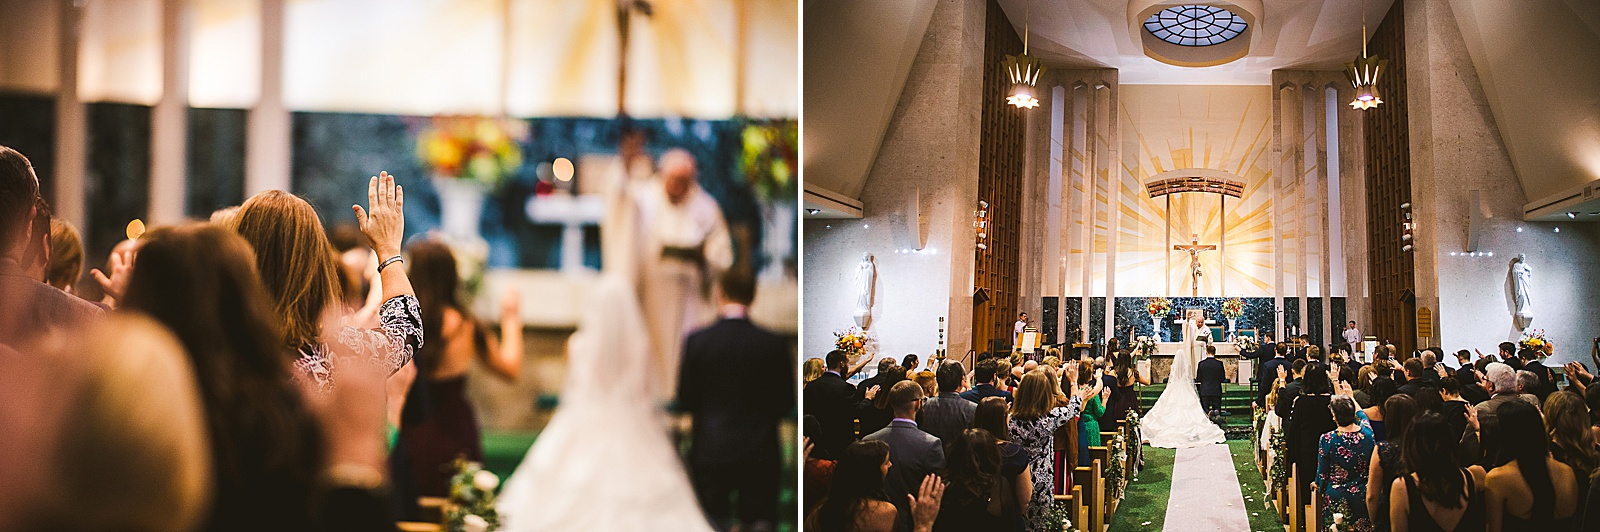 33 best church photography - The Glen Club Wedding Photos // Katie + Nick